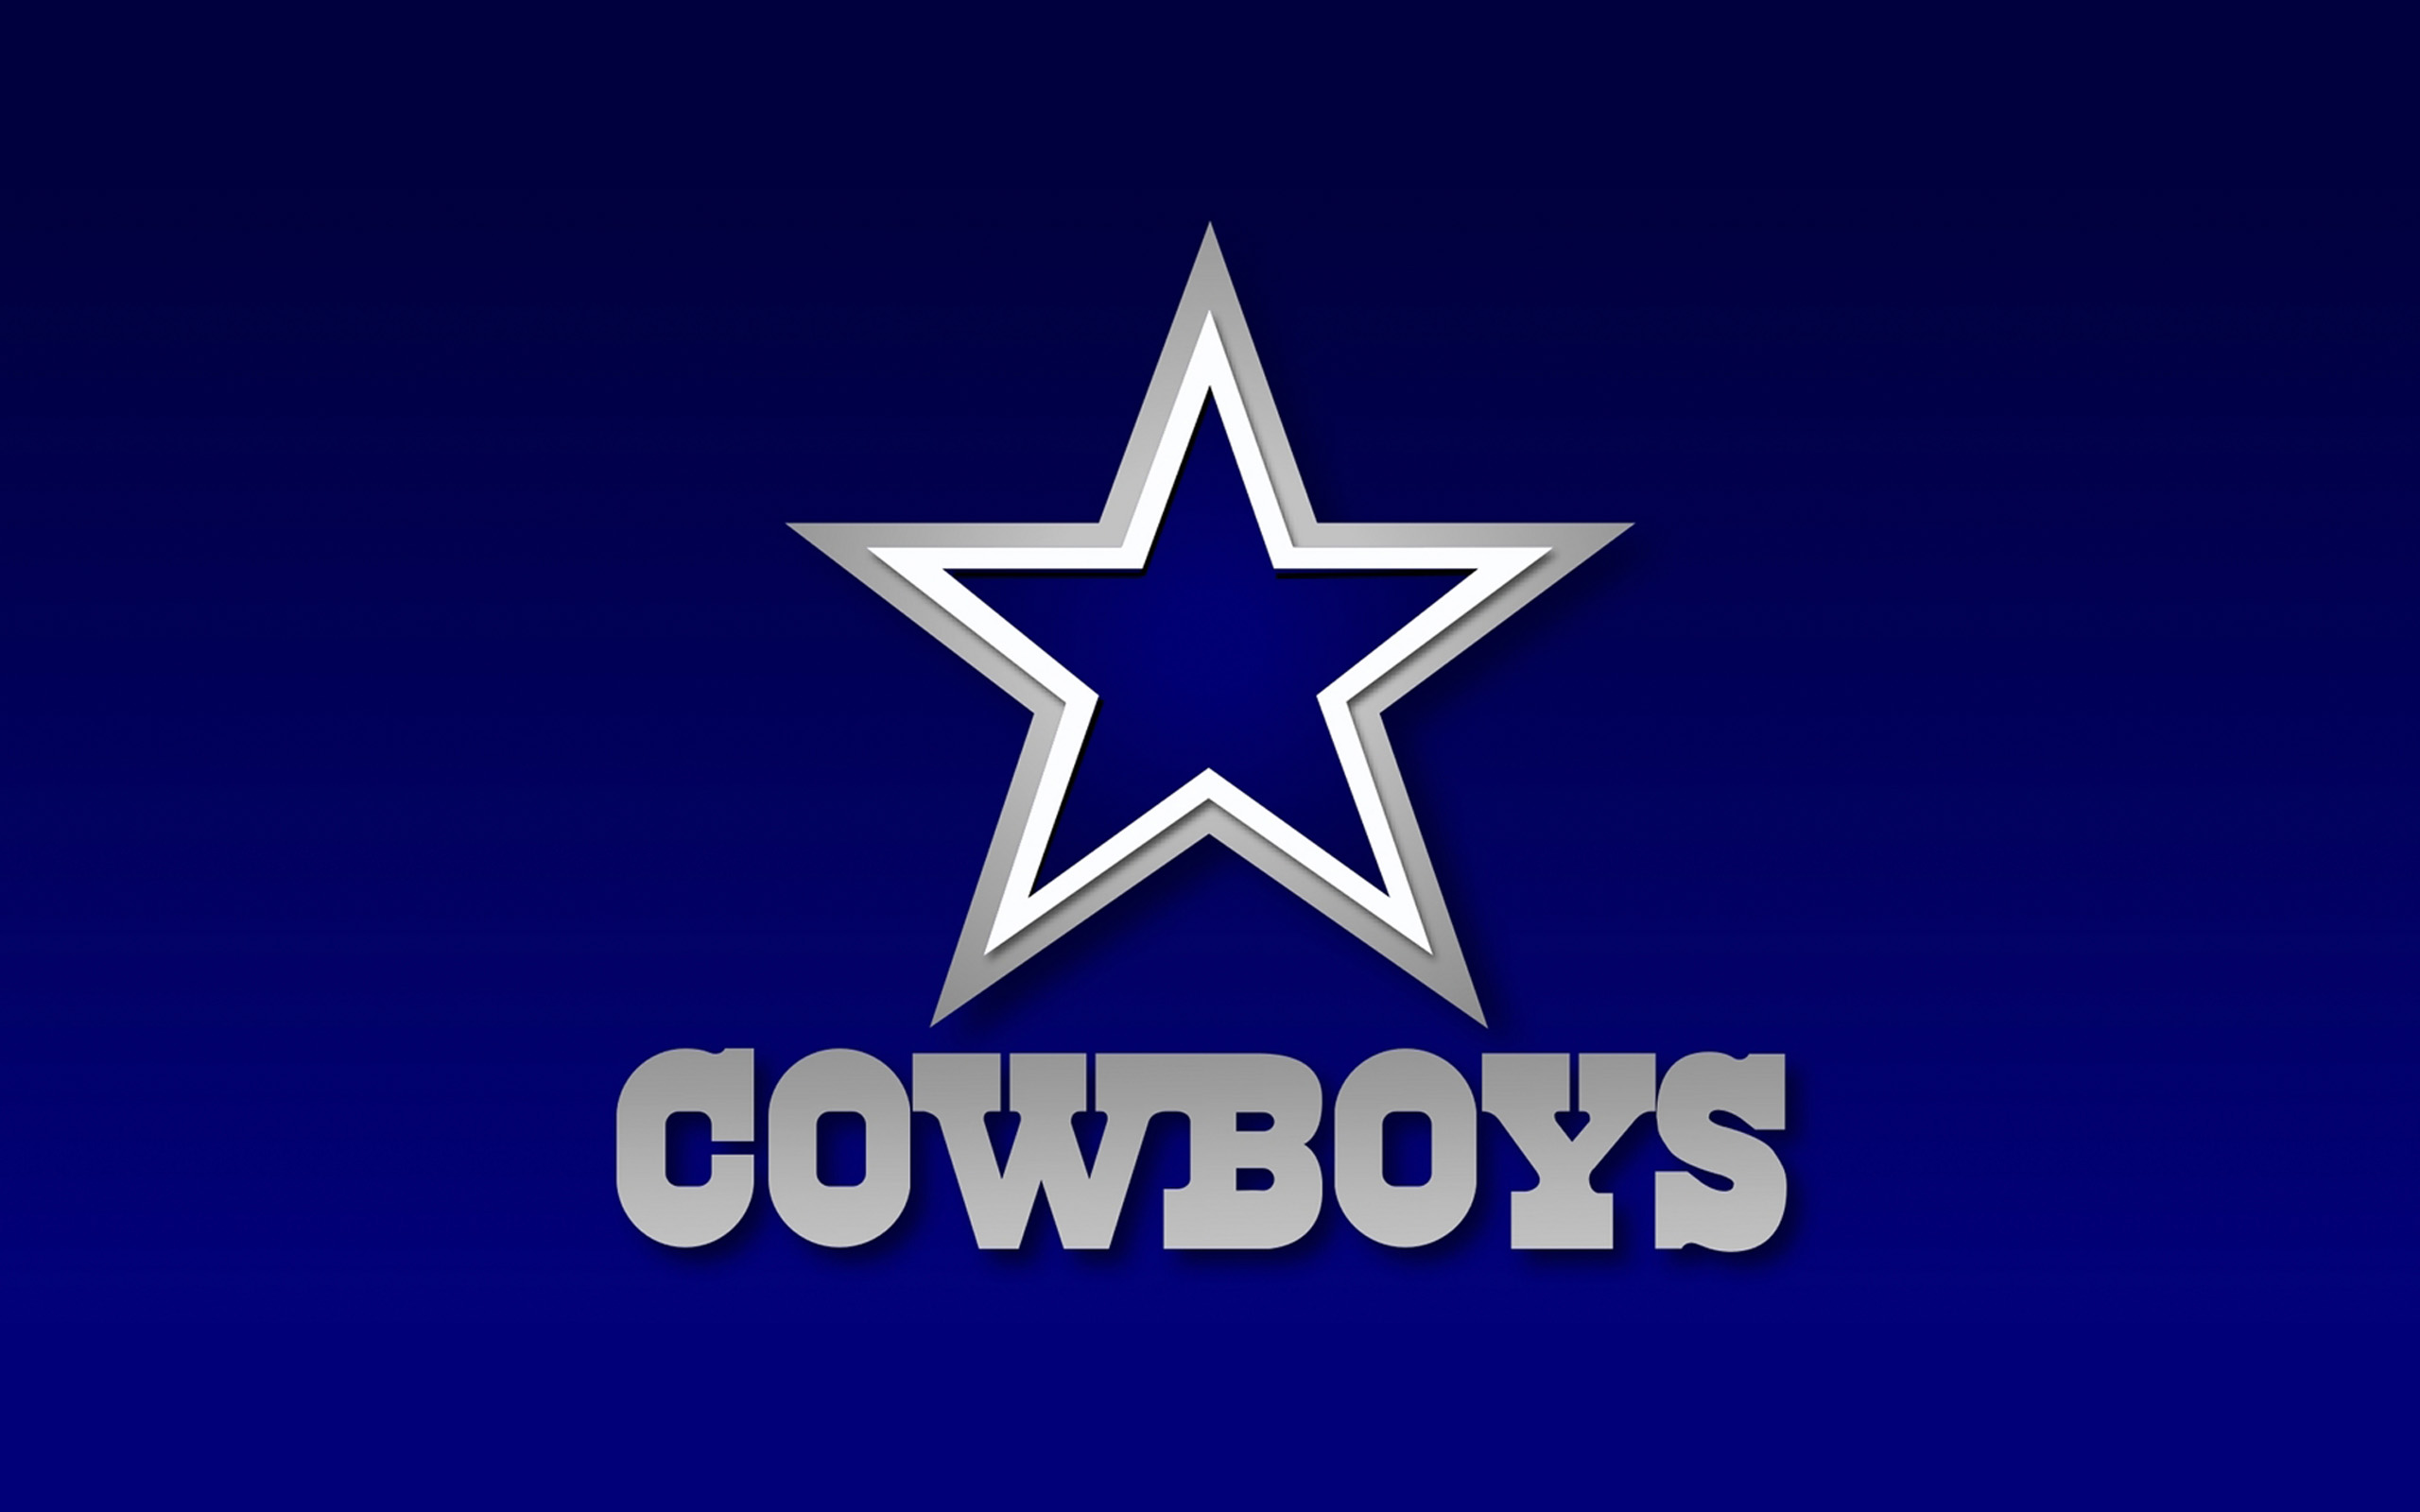 dallas cowboys star logo wallpaper | danyalsak